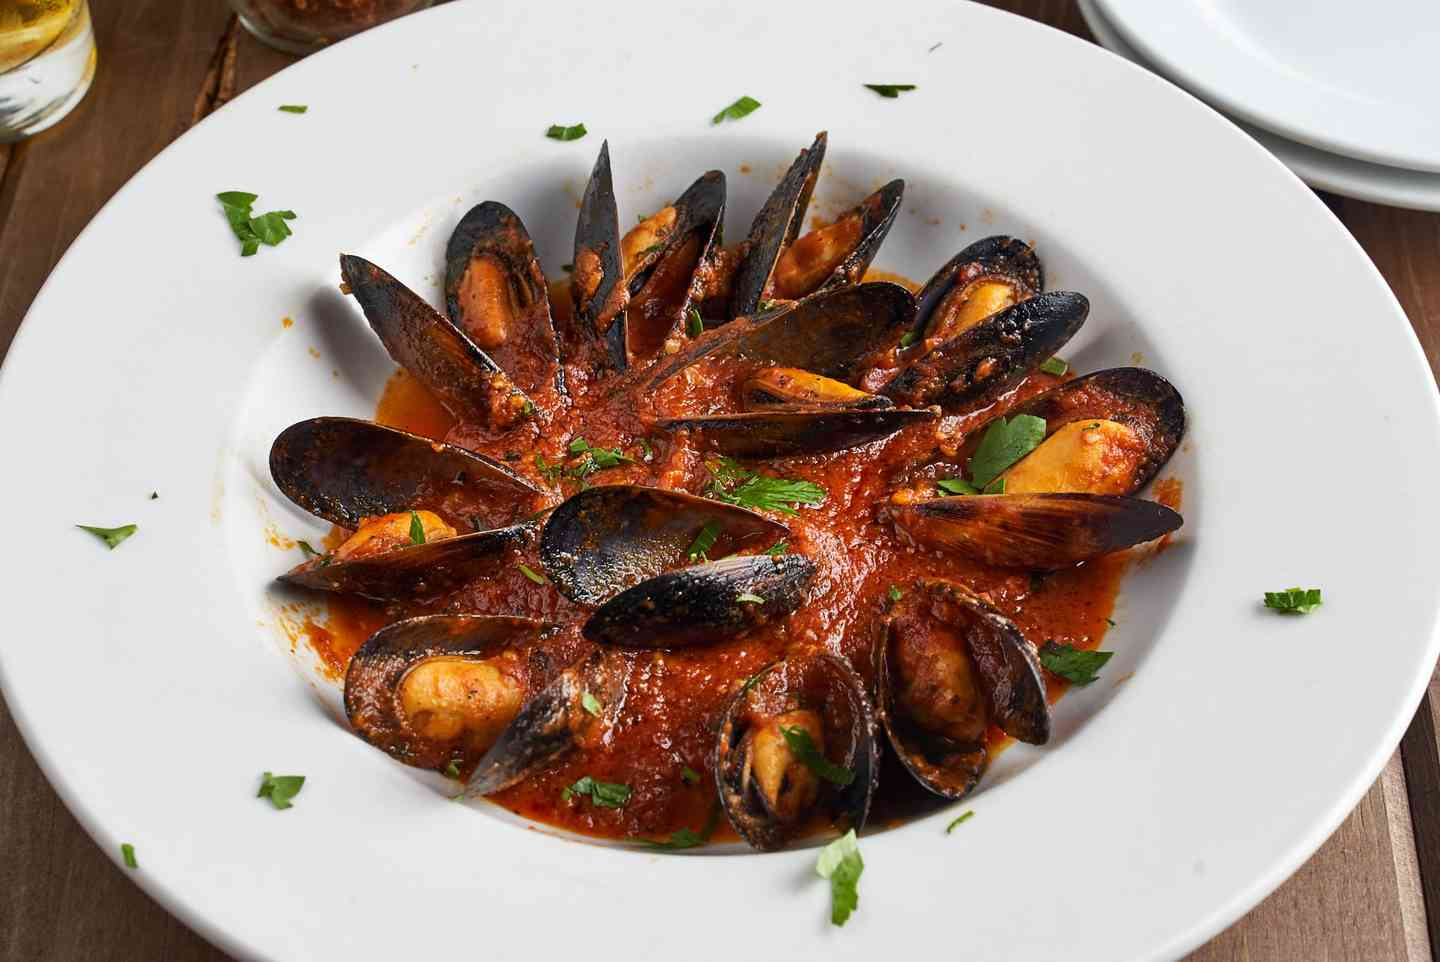 Black or New Zealand Mussels